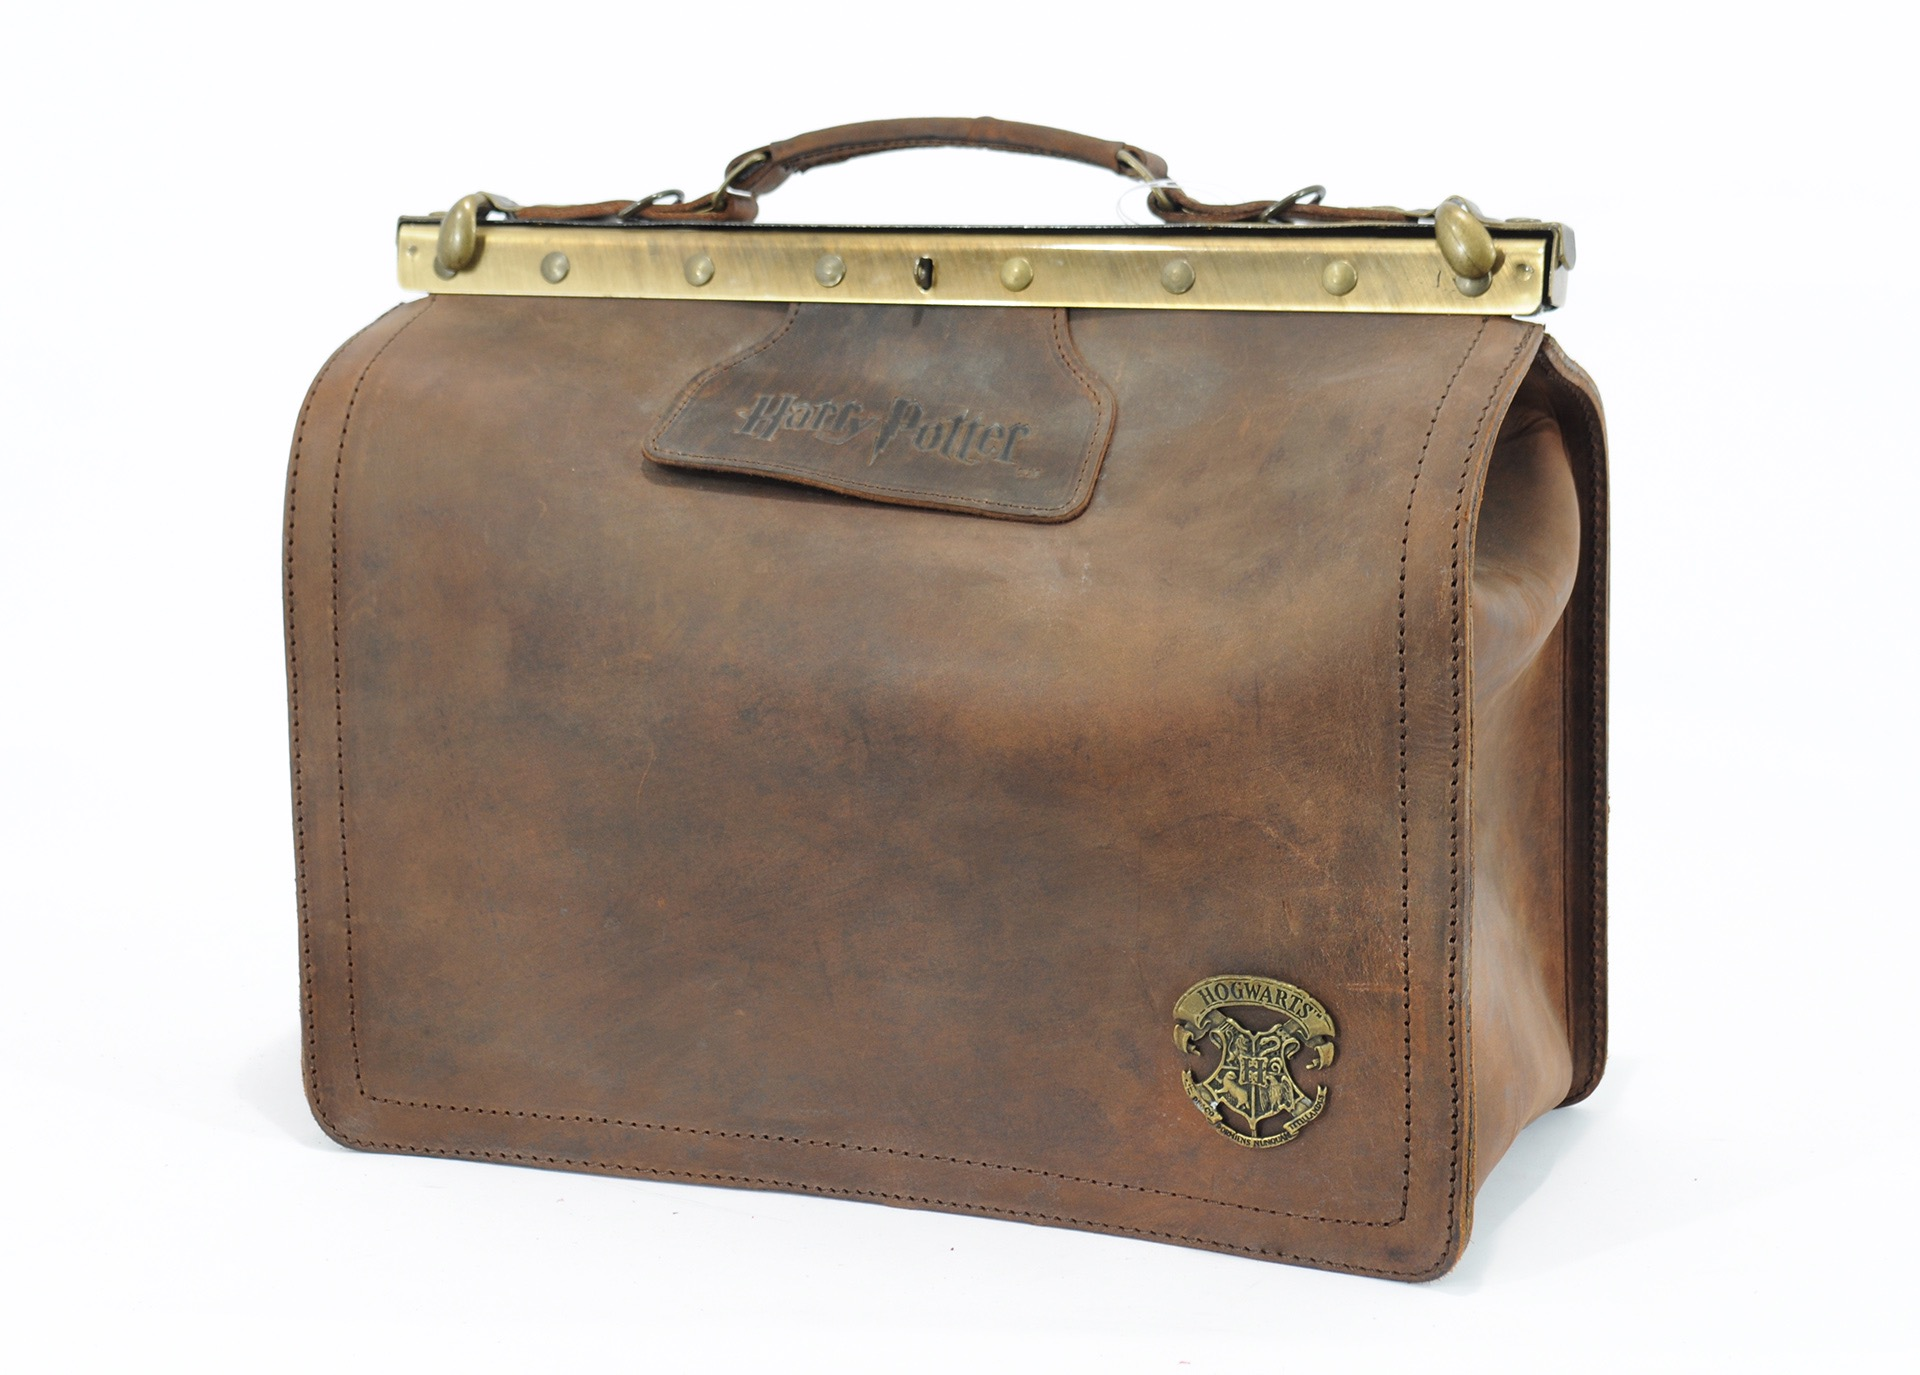 Harry Potter Doctor's bag made by Ruitertassen.